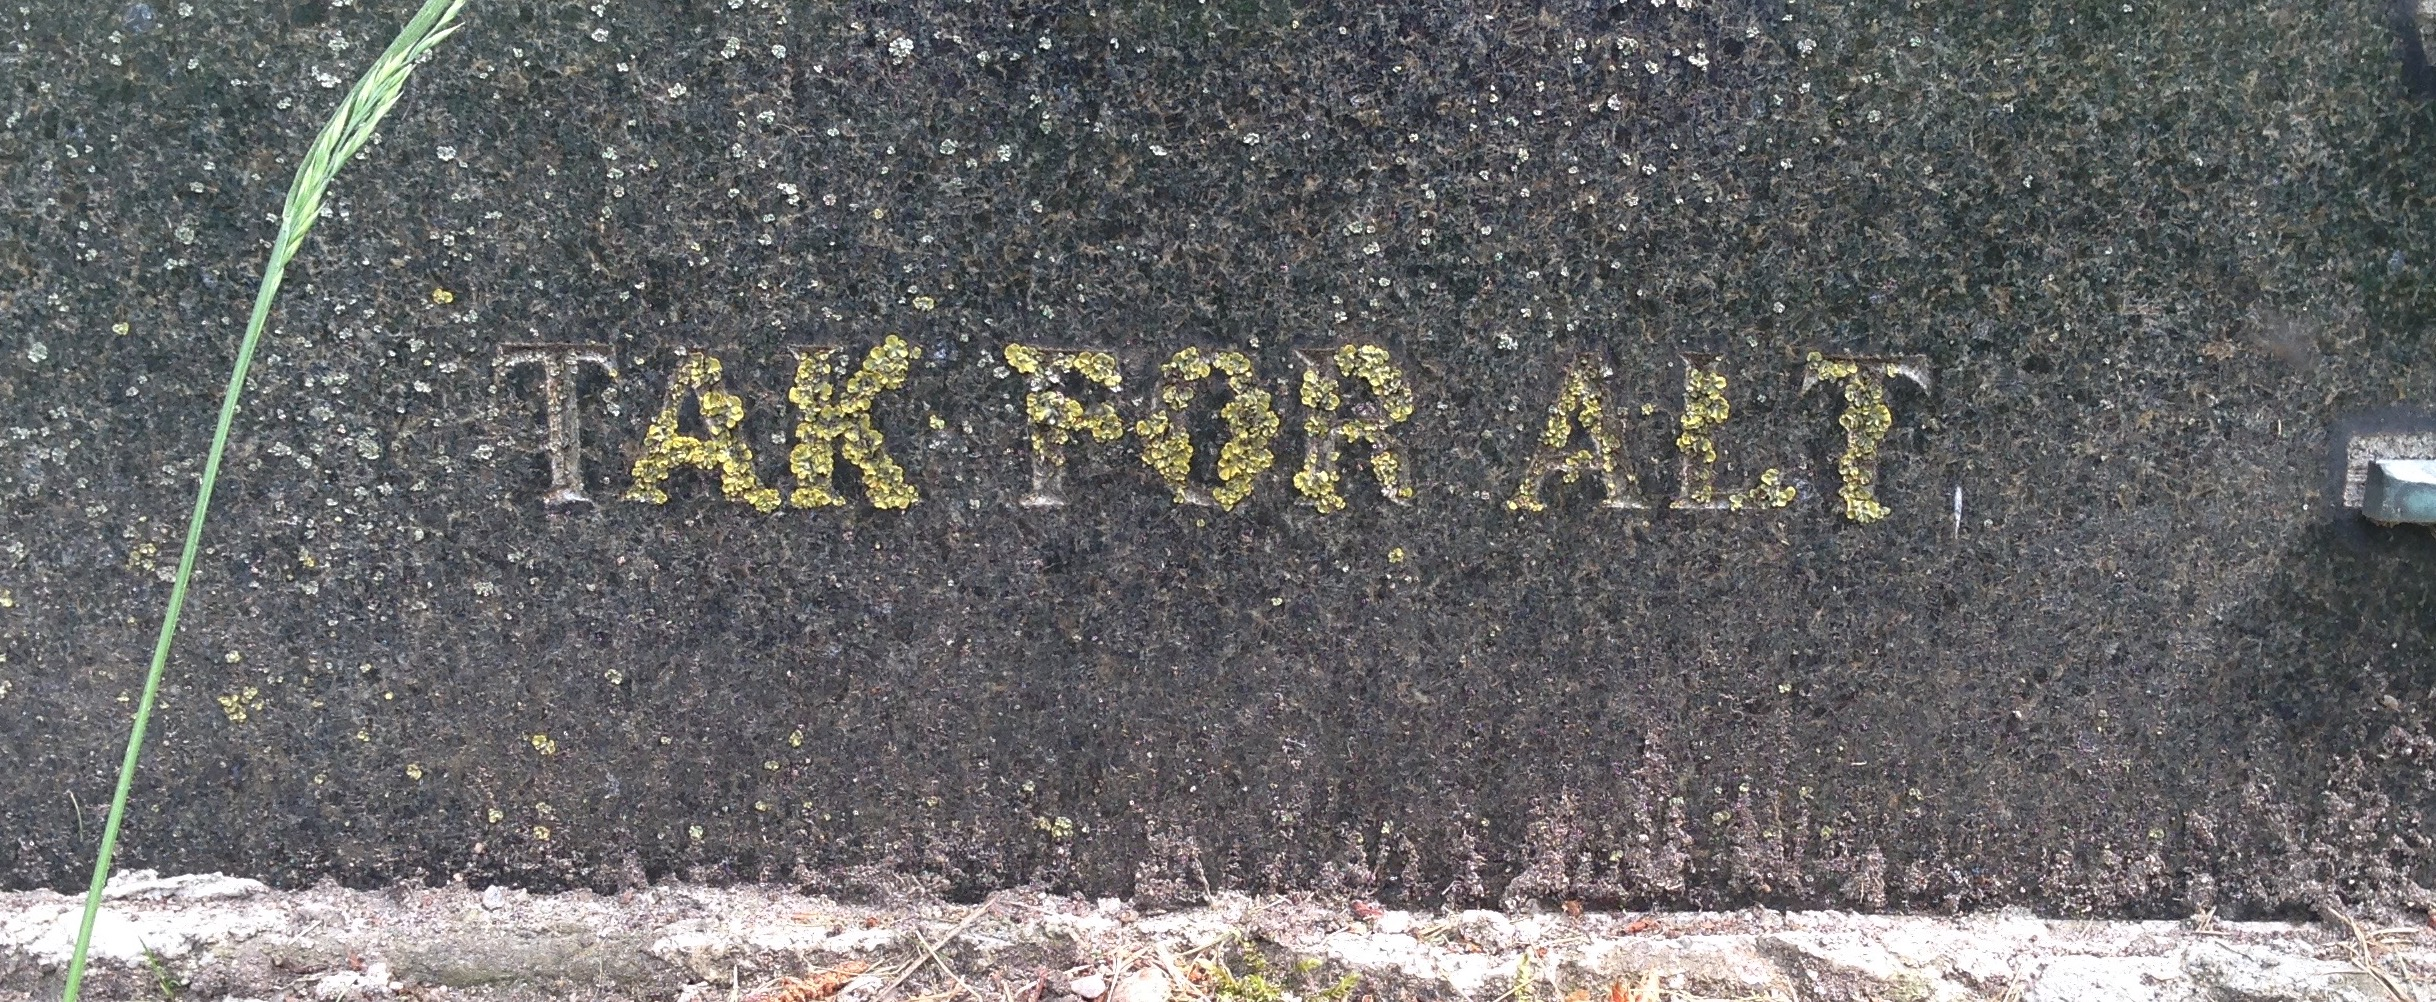 Close-up photo of an inscription on a gravestone reading 'TAK FOR ALT'.